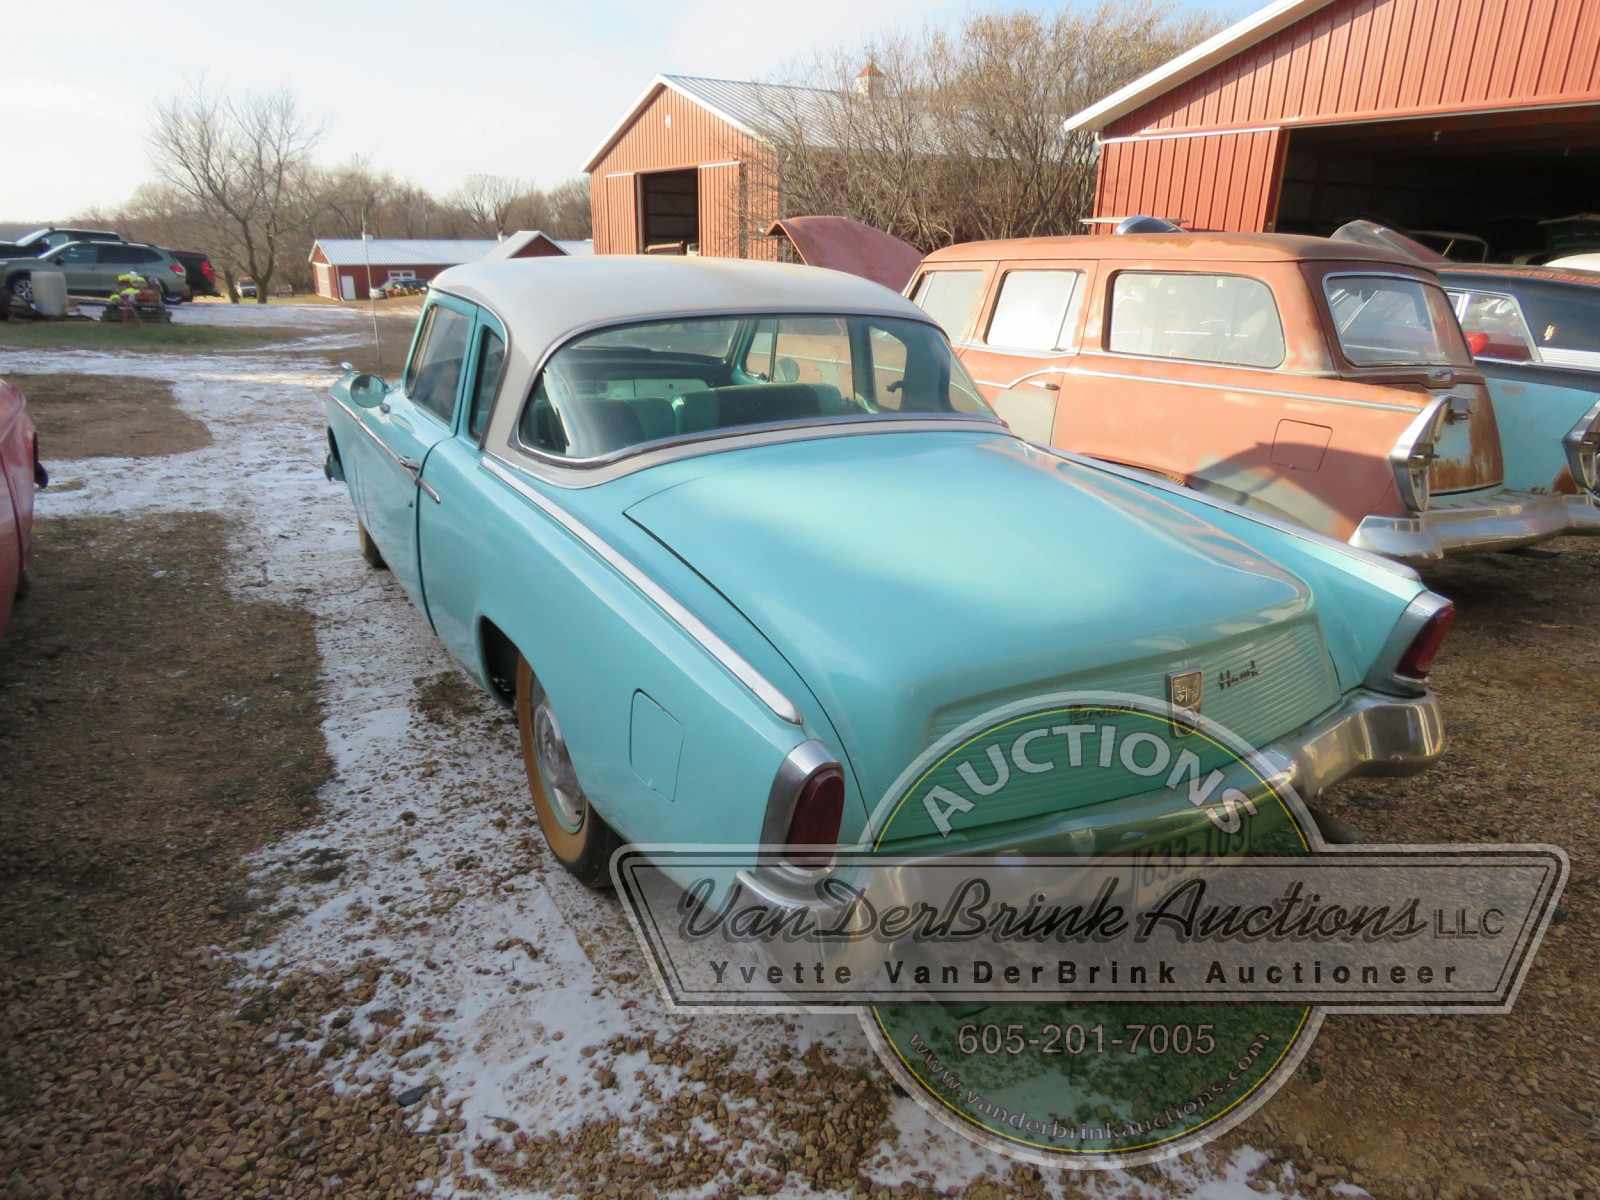 1956 Studebaker Power Hawk 2dr Sedan - Image 5